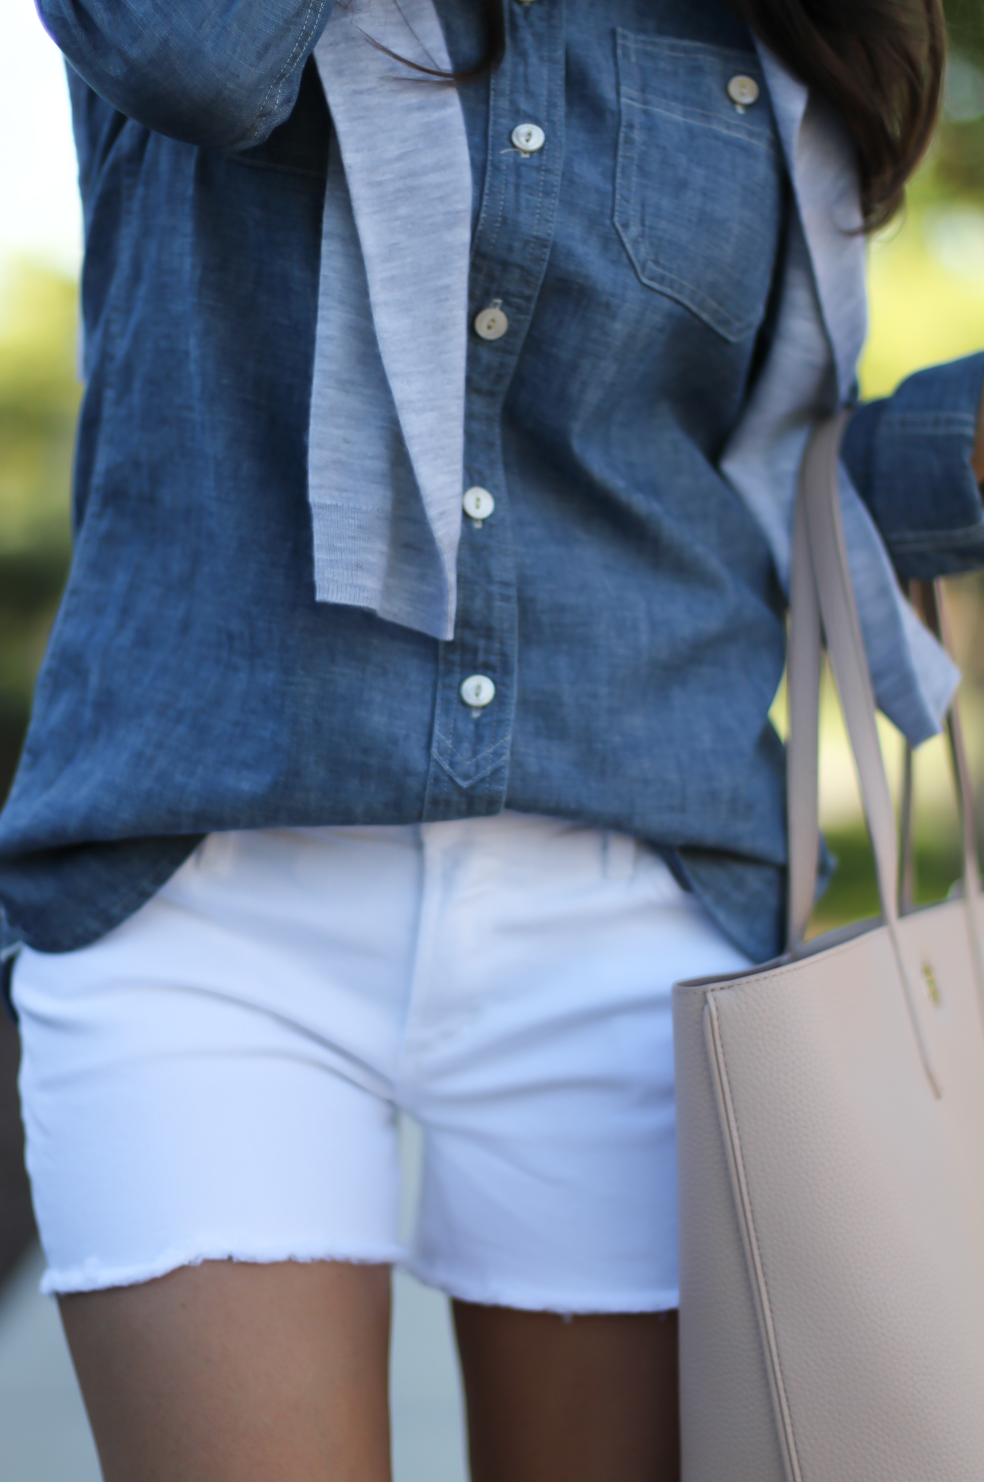 Chambray Shirt, White Cutoff Shorts, Beige Espadrille Wedges, Beige Tote, Grey Cashmere Cardigan, J.Crew, Citizens of Humanity, Vince, Tory Burch 19